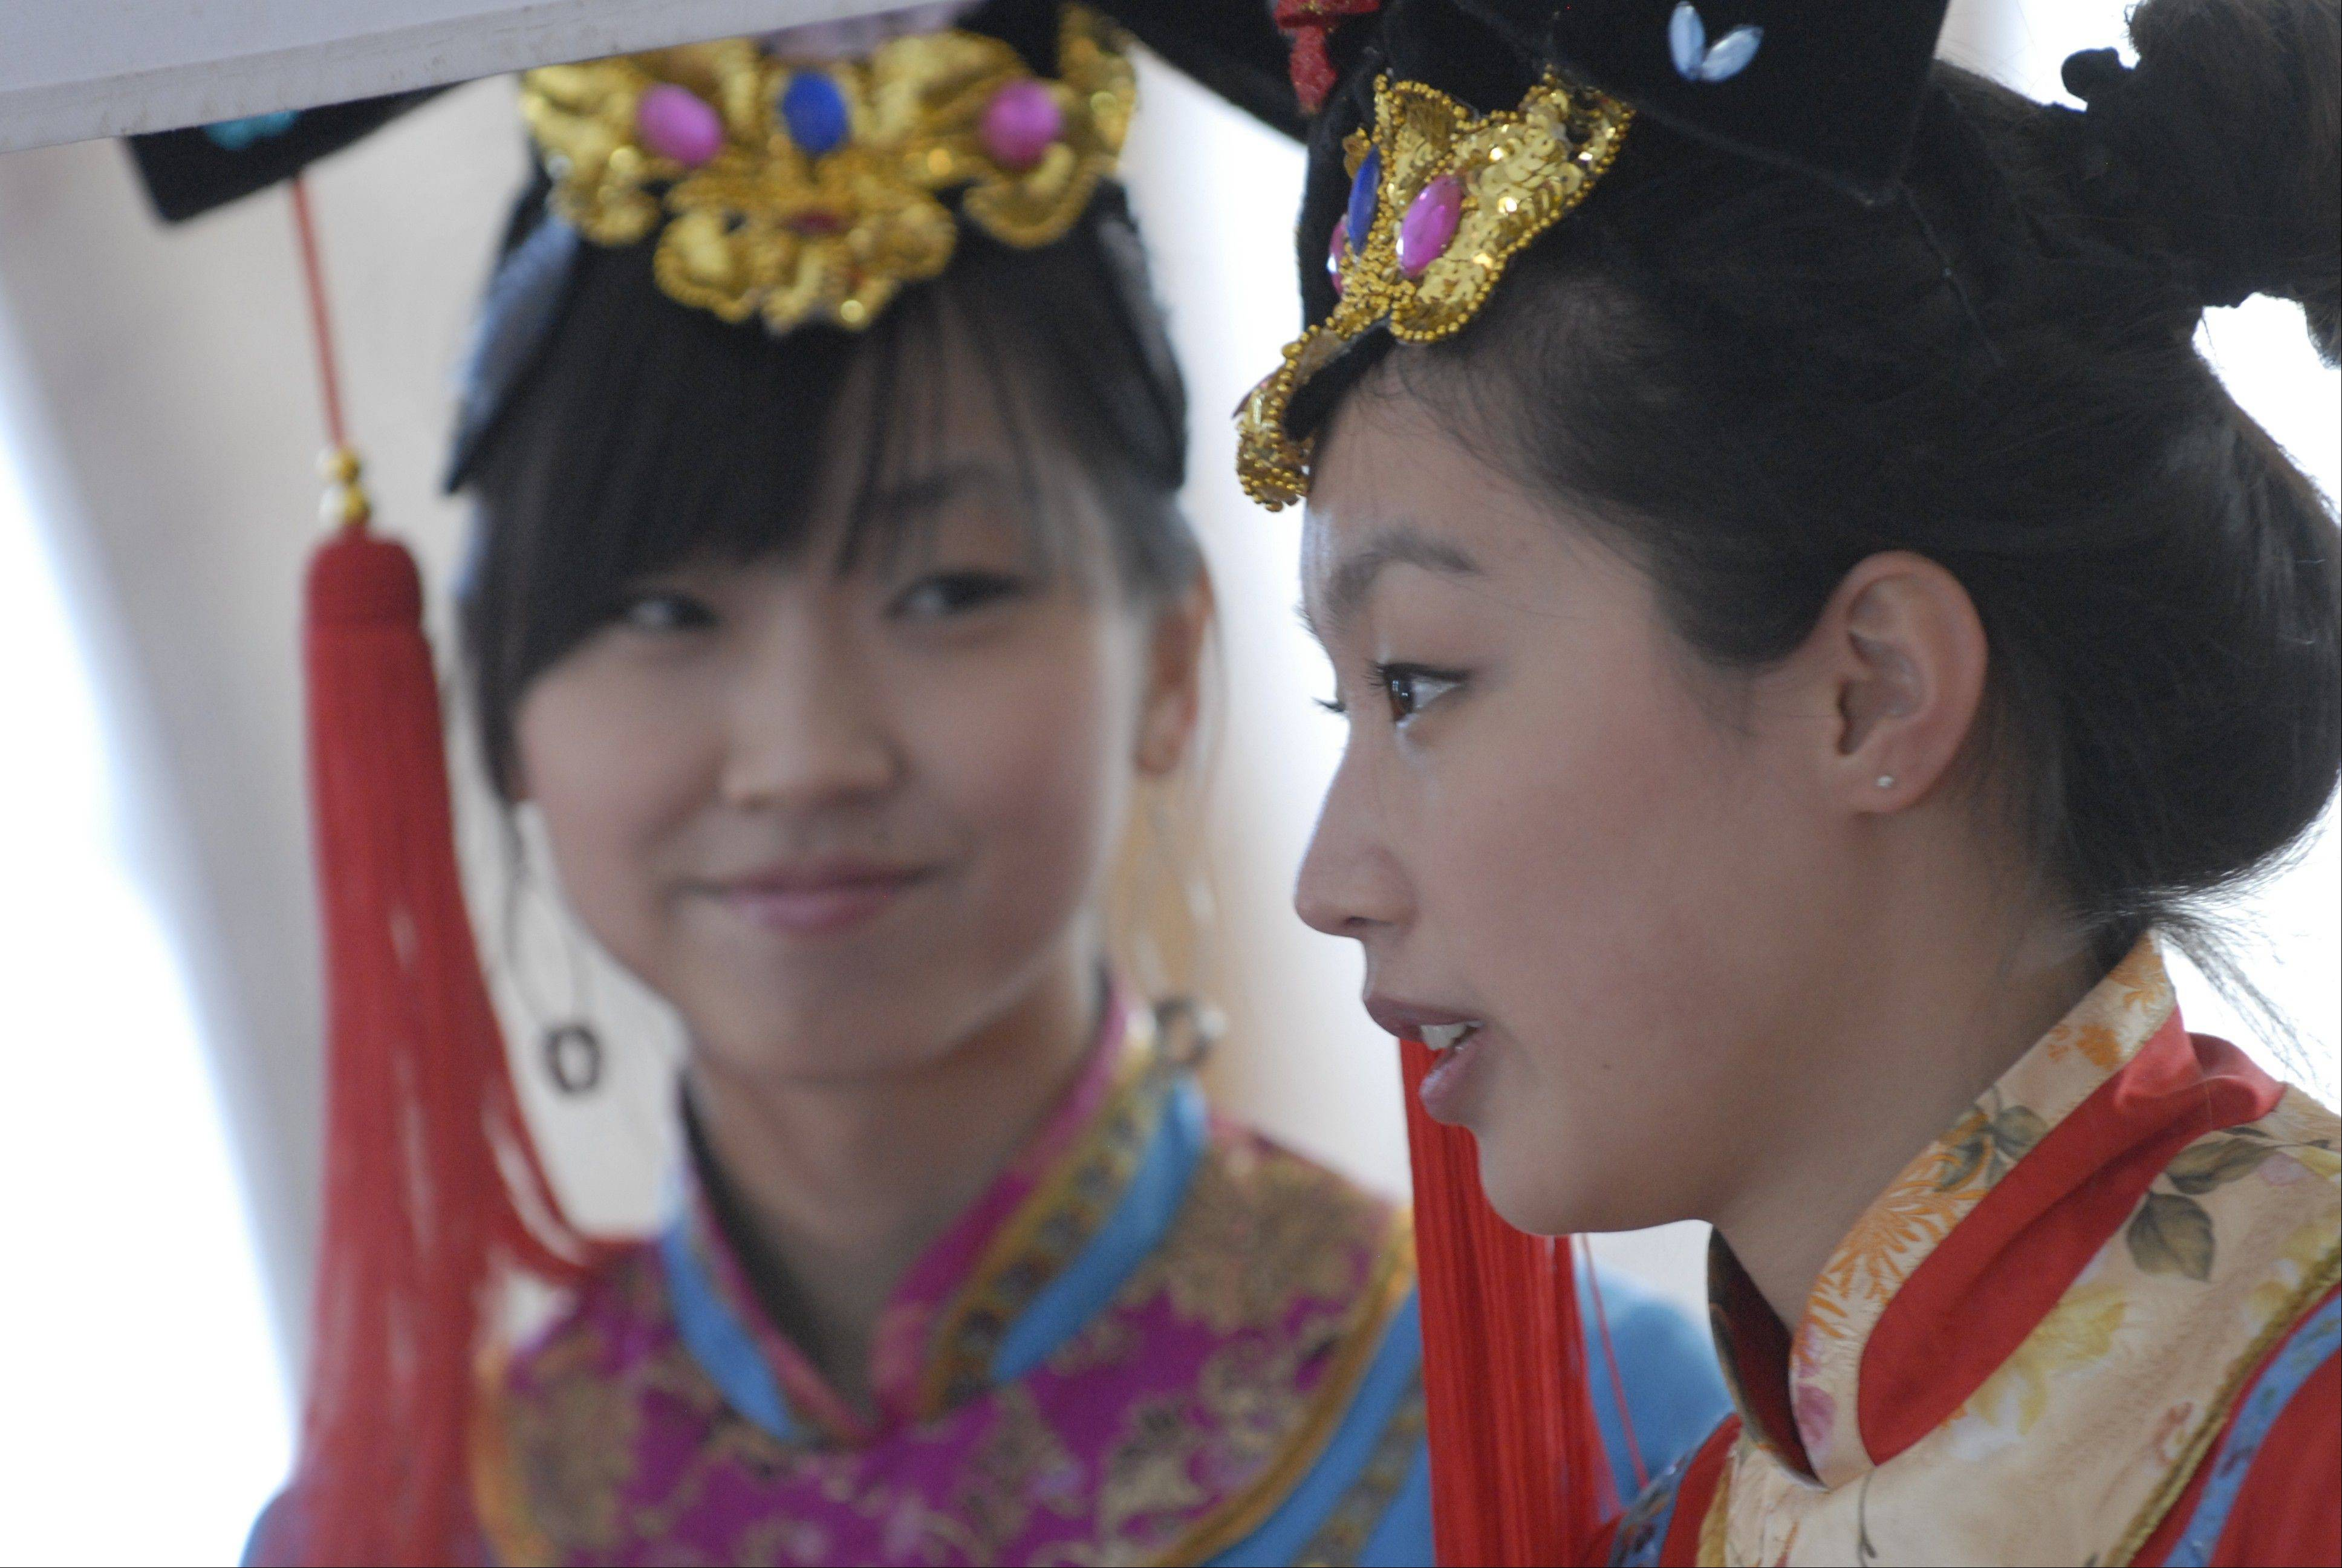 Benedictine University in Lisle will celebrate its sixth annual Festival of Asia from 10 a.m. to 1 p.m. Friday in the Krasa Student Center.